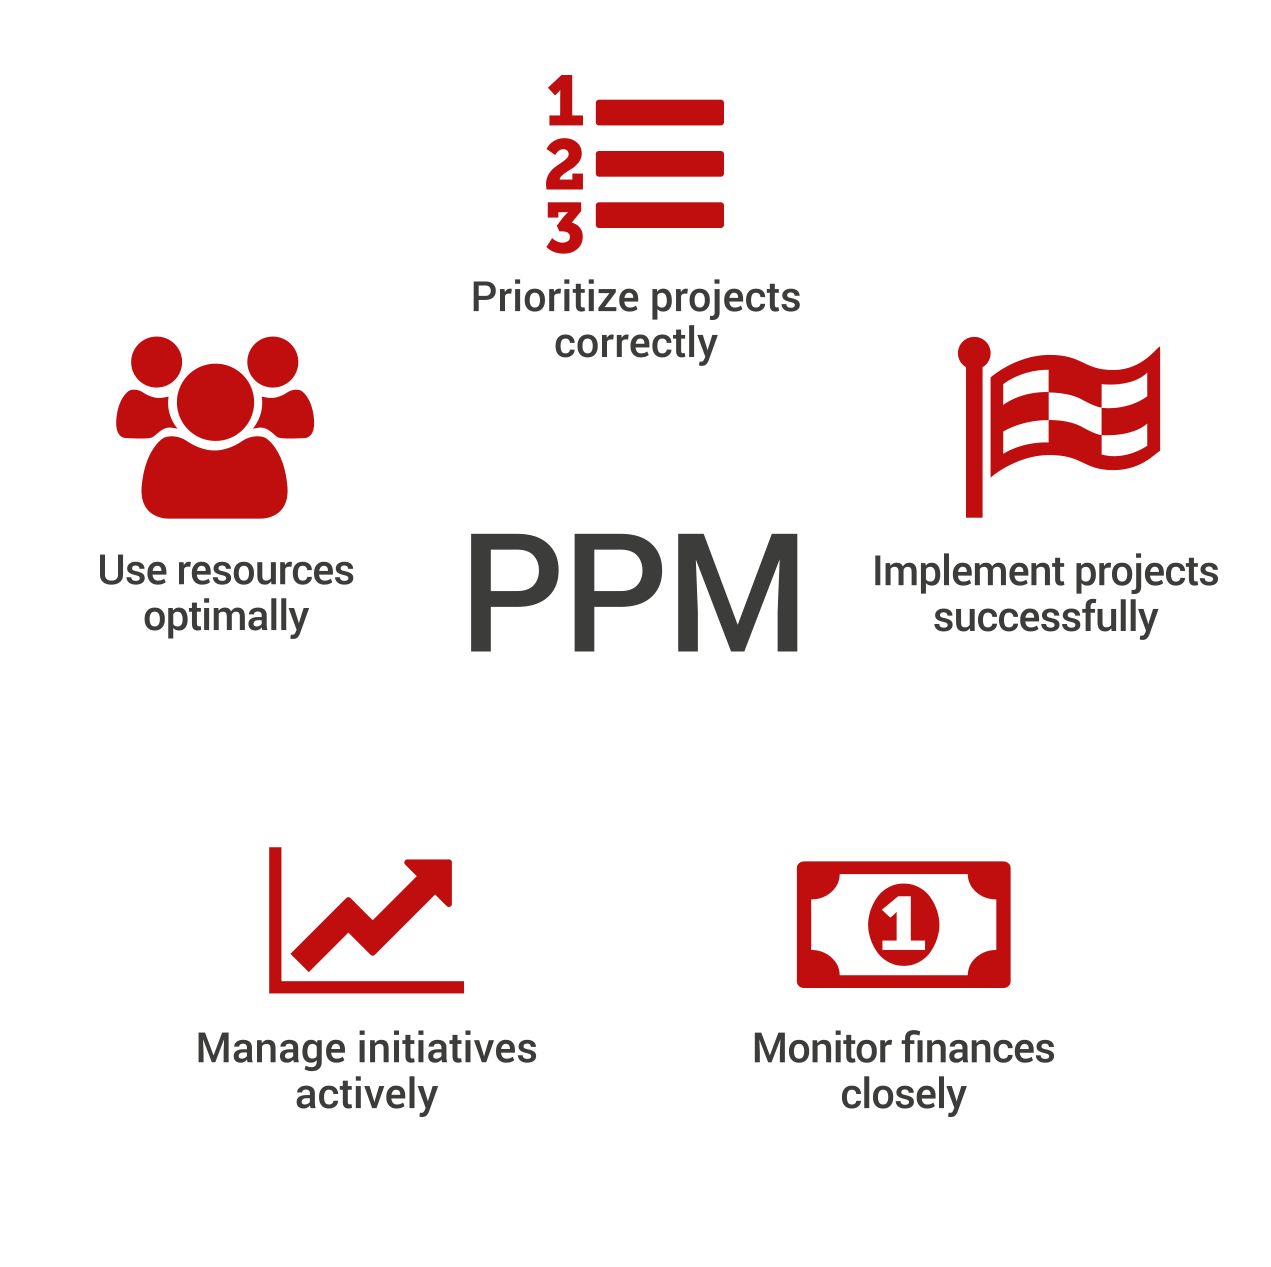 Elements of PPM: Prioritize projects correctly, implement projects, successfully, monitor finances closely, manage initiatives actively, use resources optimally